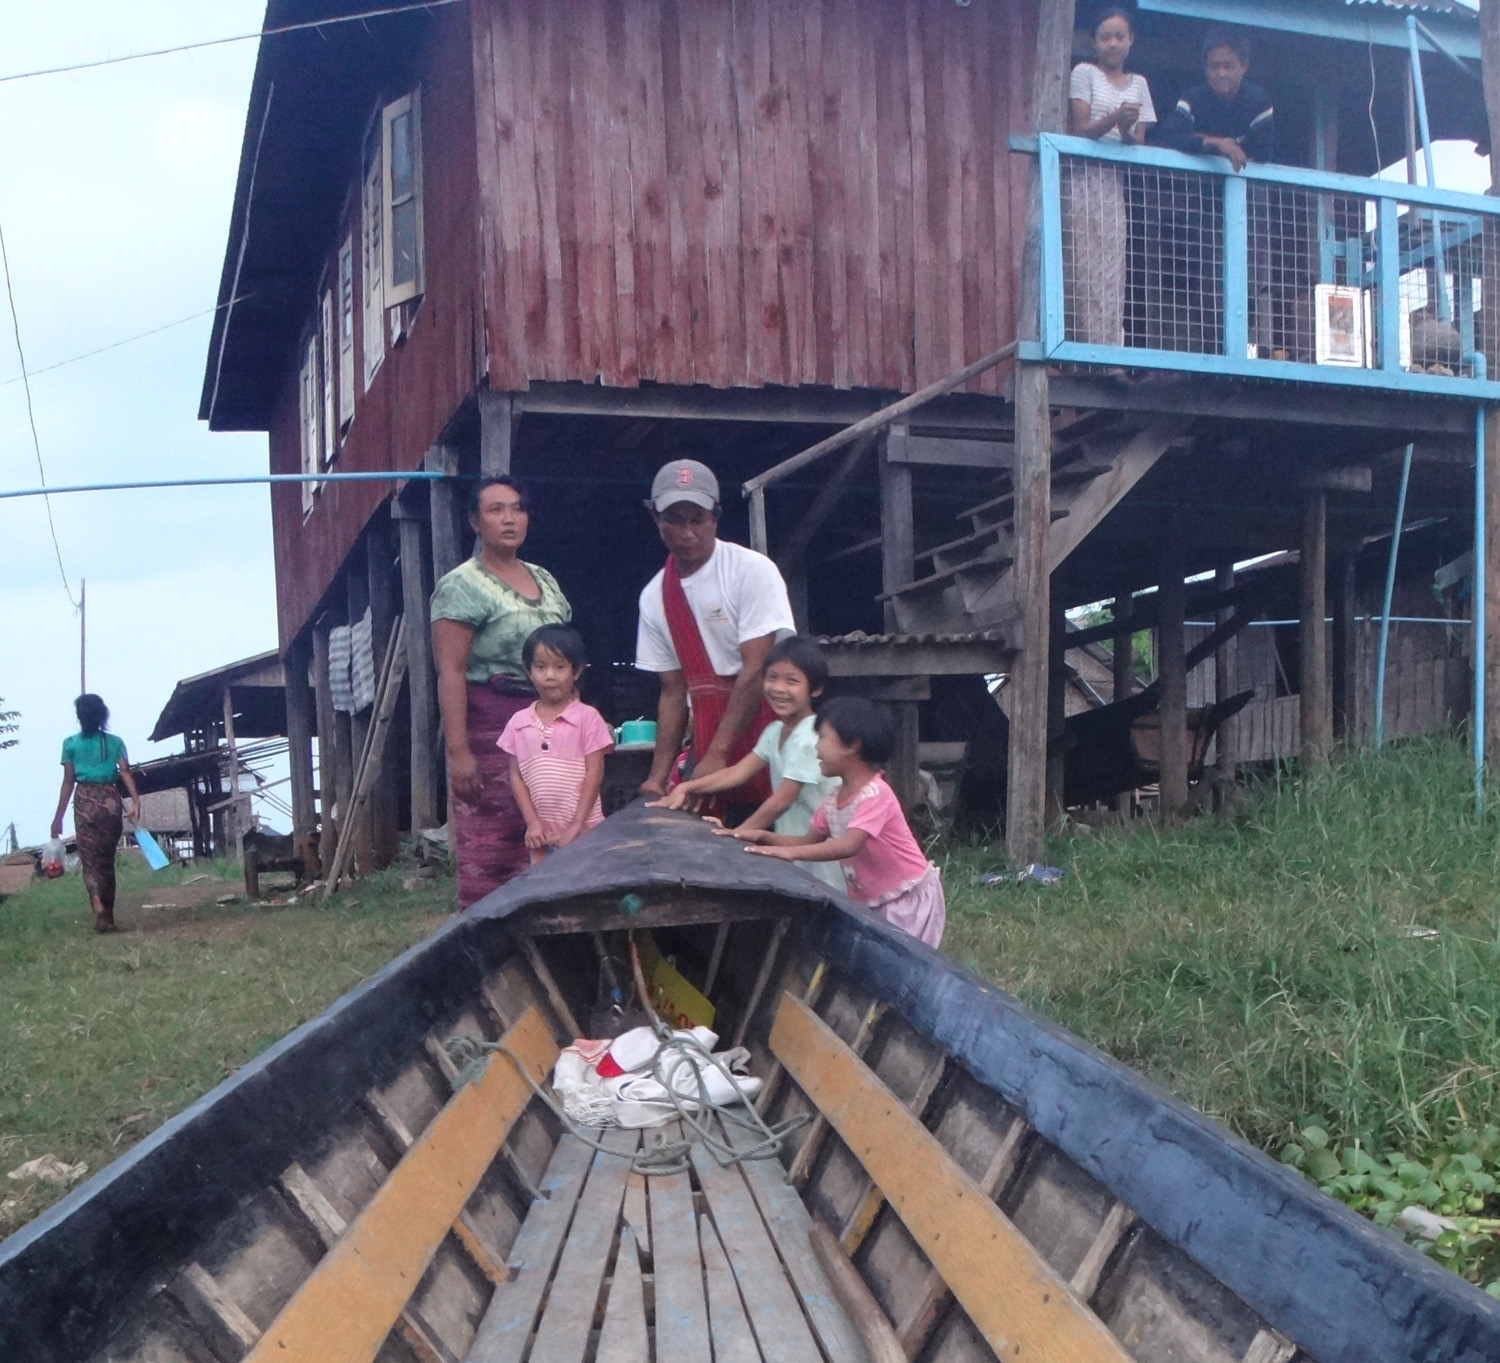 Nmgsoe, our boatman, his wife, and some children from the village.